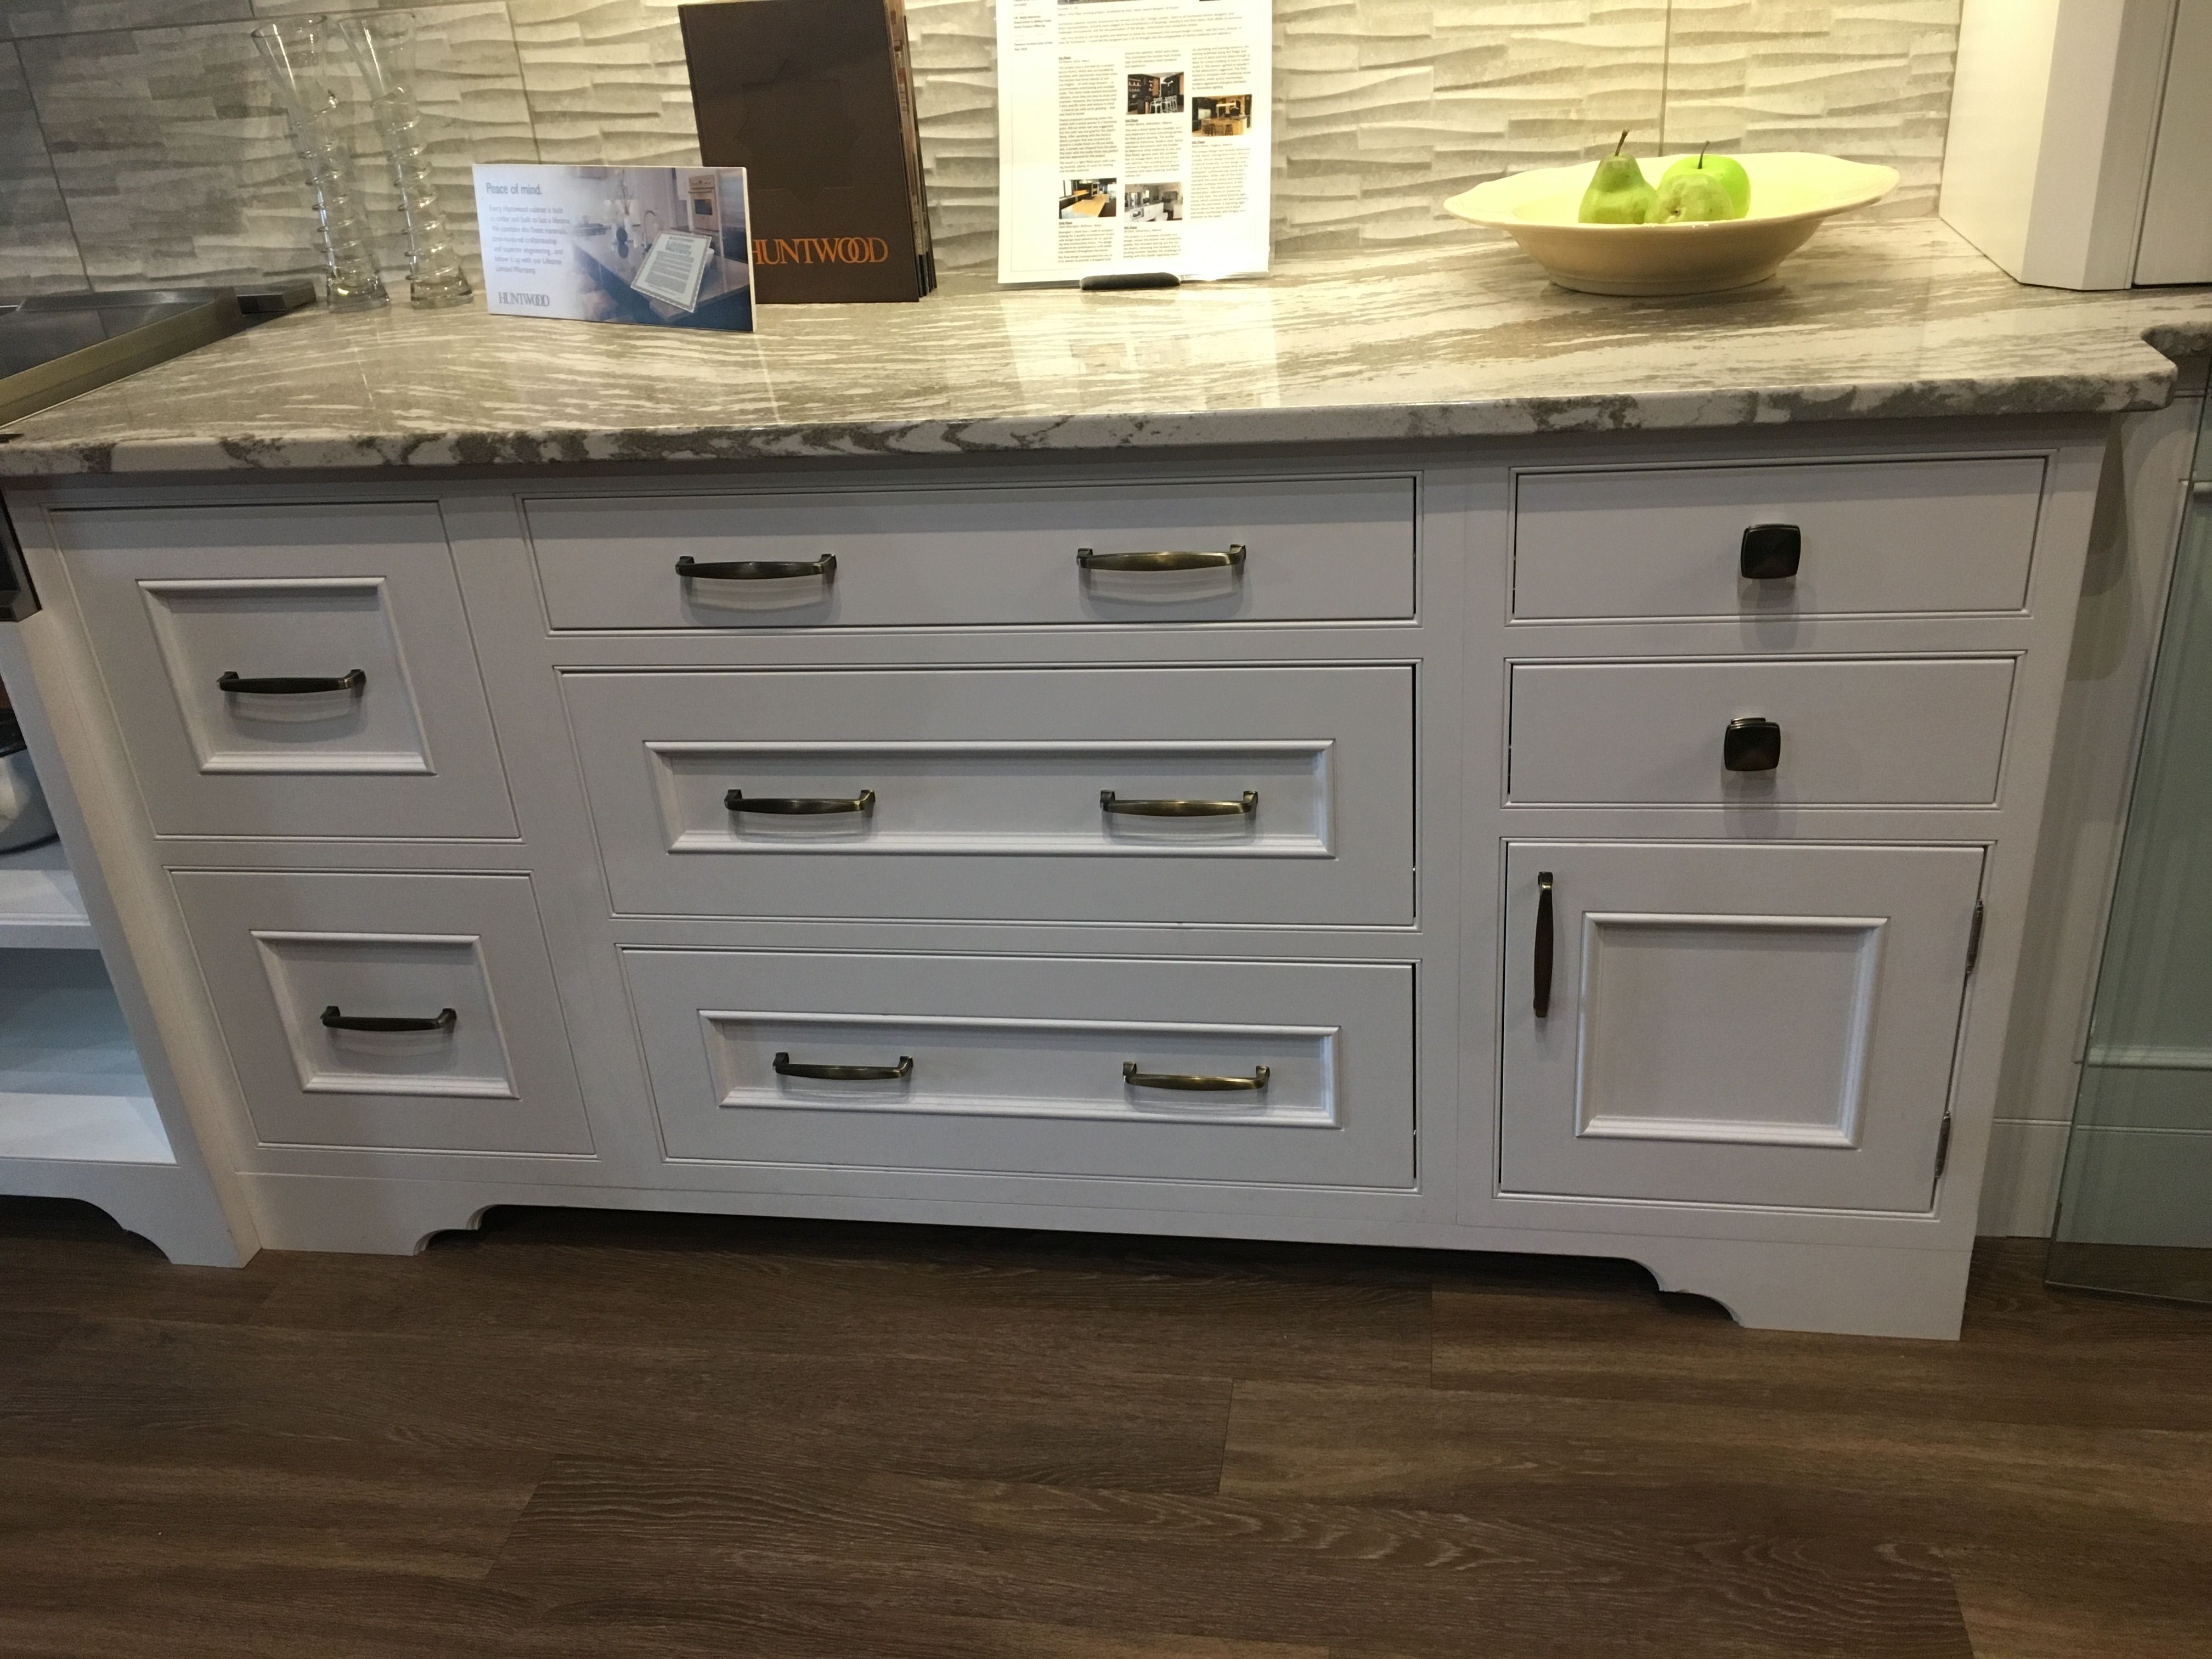 Huntwood on display- Stafford- Flush beaded inset ...